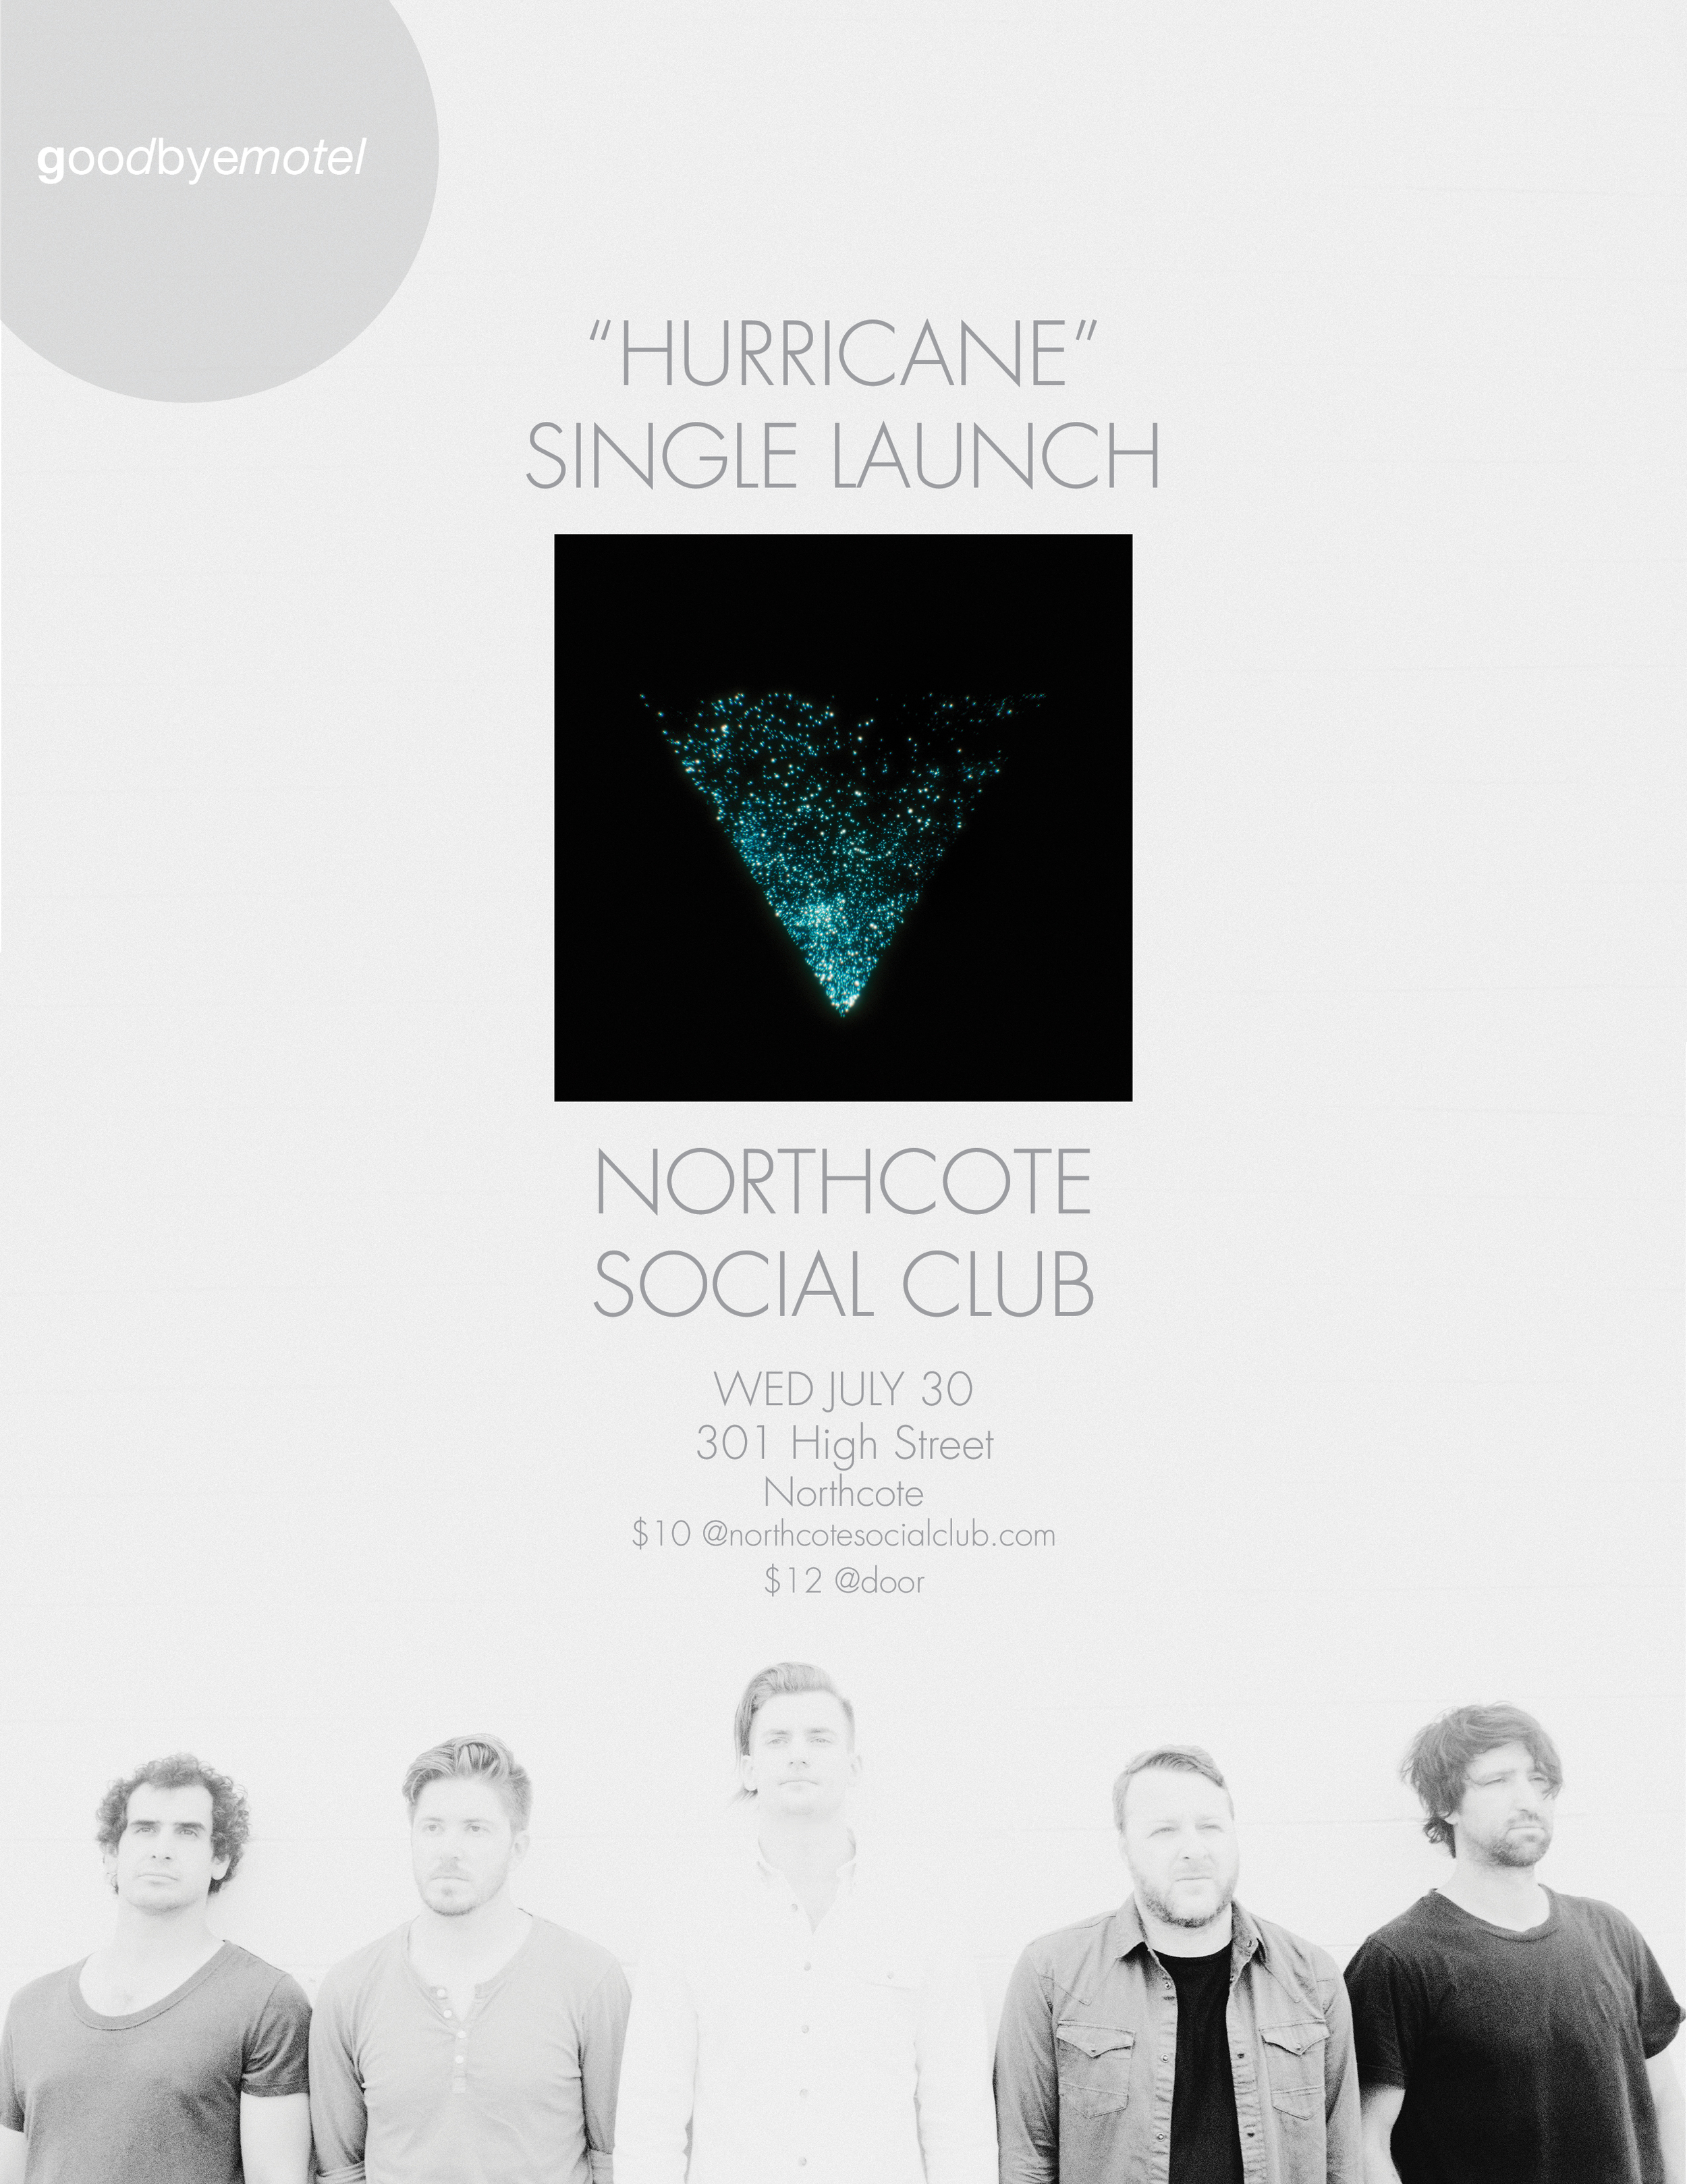 northcote-social-club-goobyemotel-single-launch-hurricane-july-30-2014